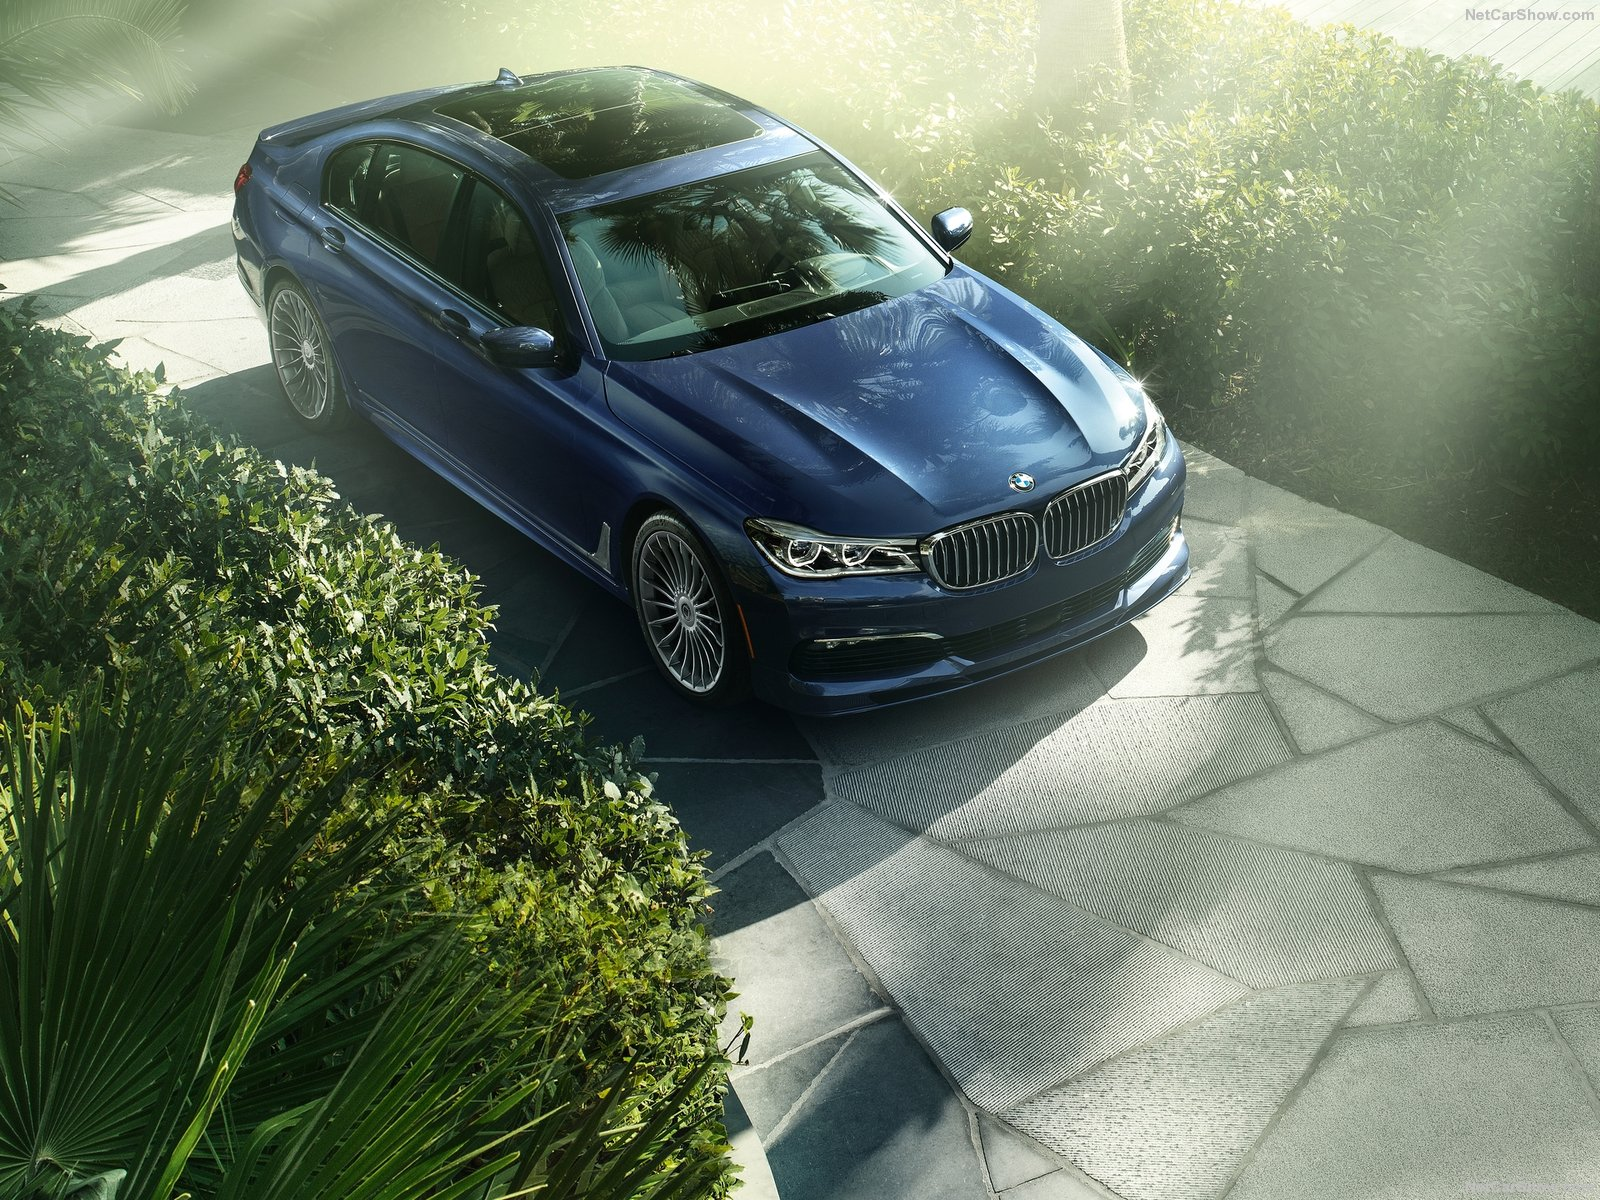 Alpina BMW B7 xDrive photo 159950